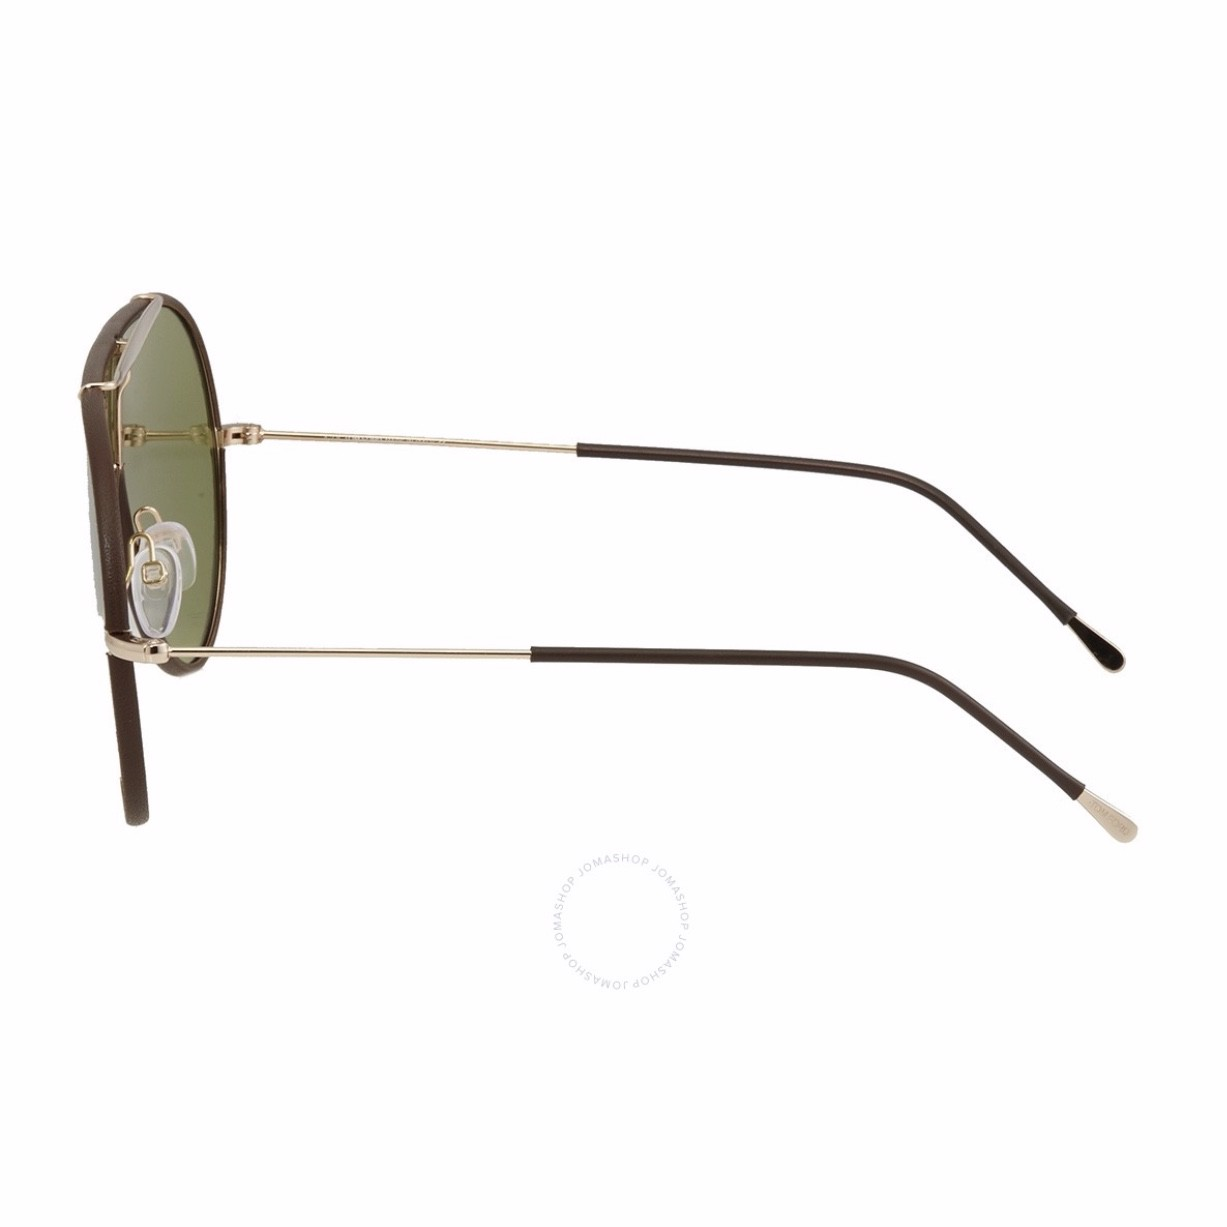 Tom Ford Tortoise Browline Eyeglass Frames 056